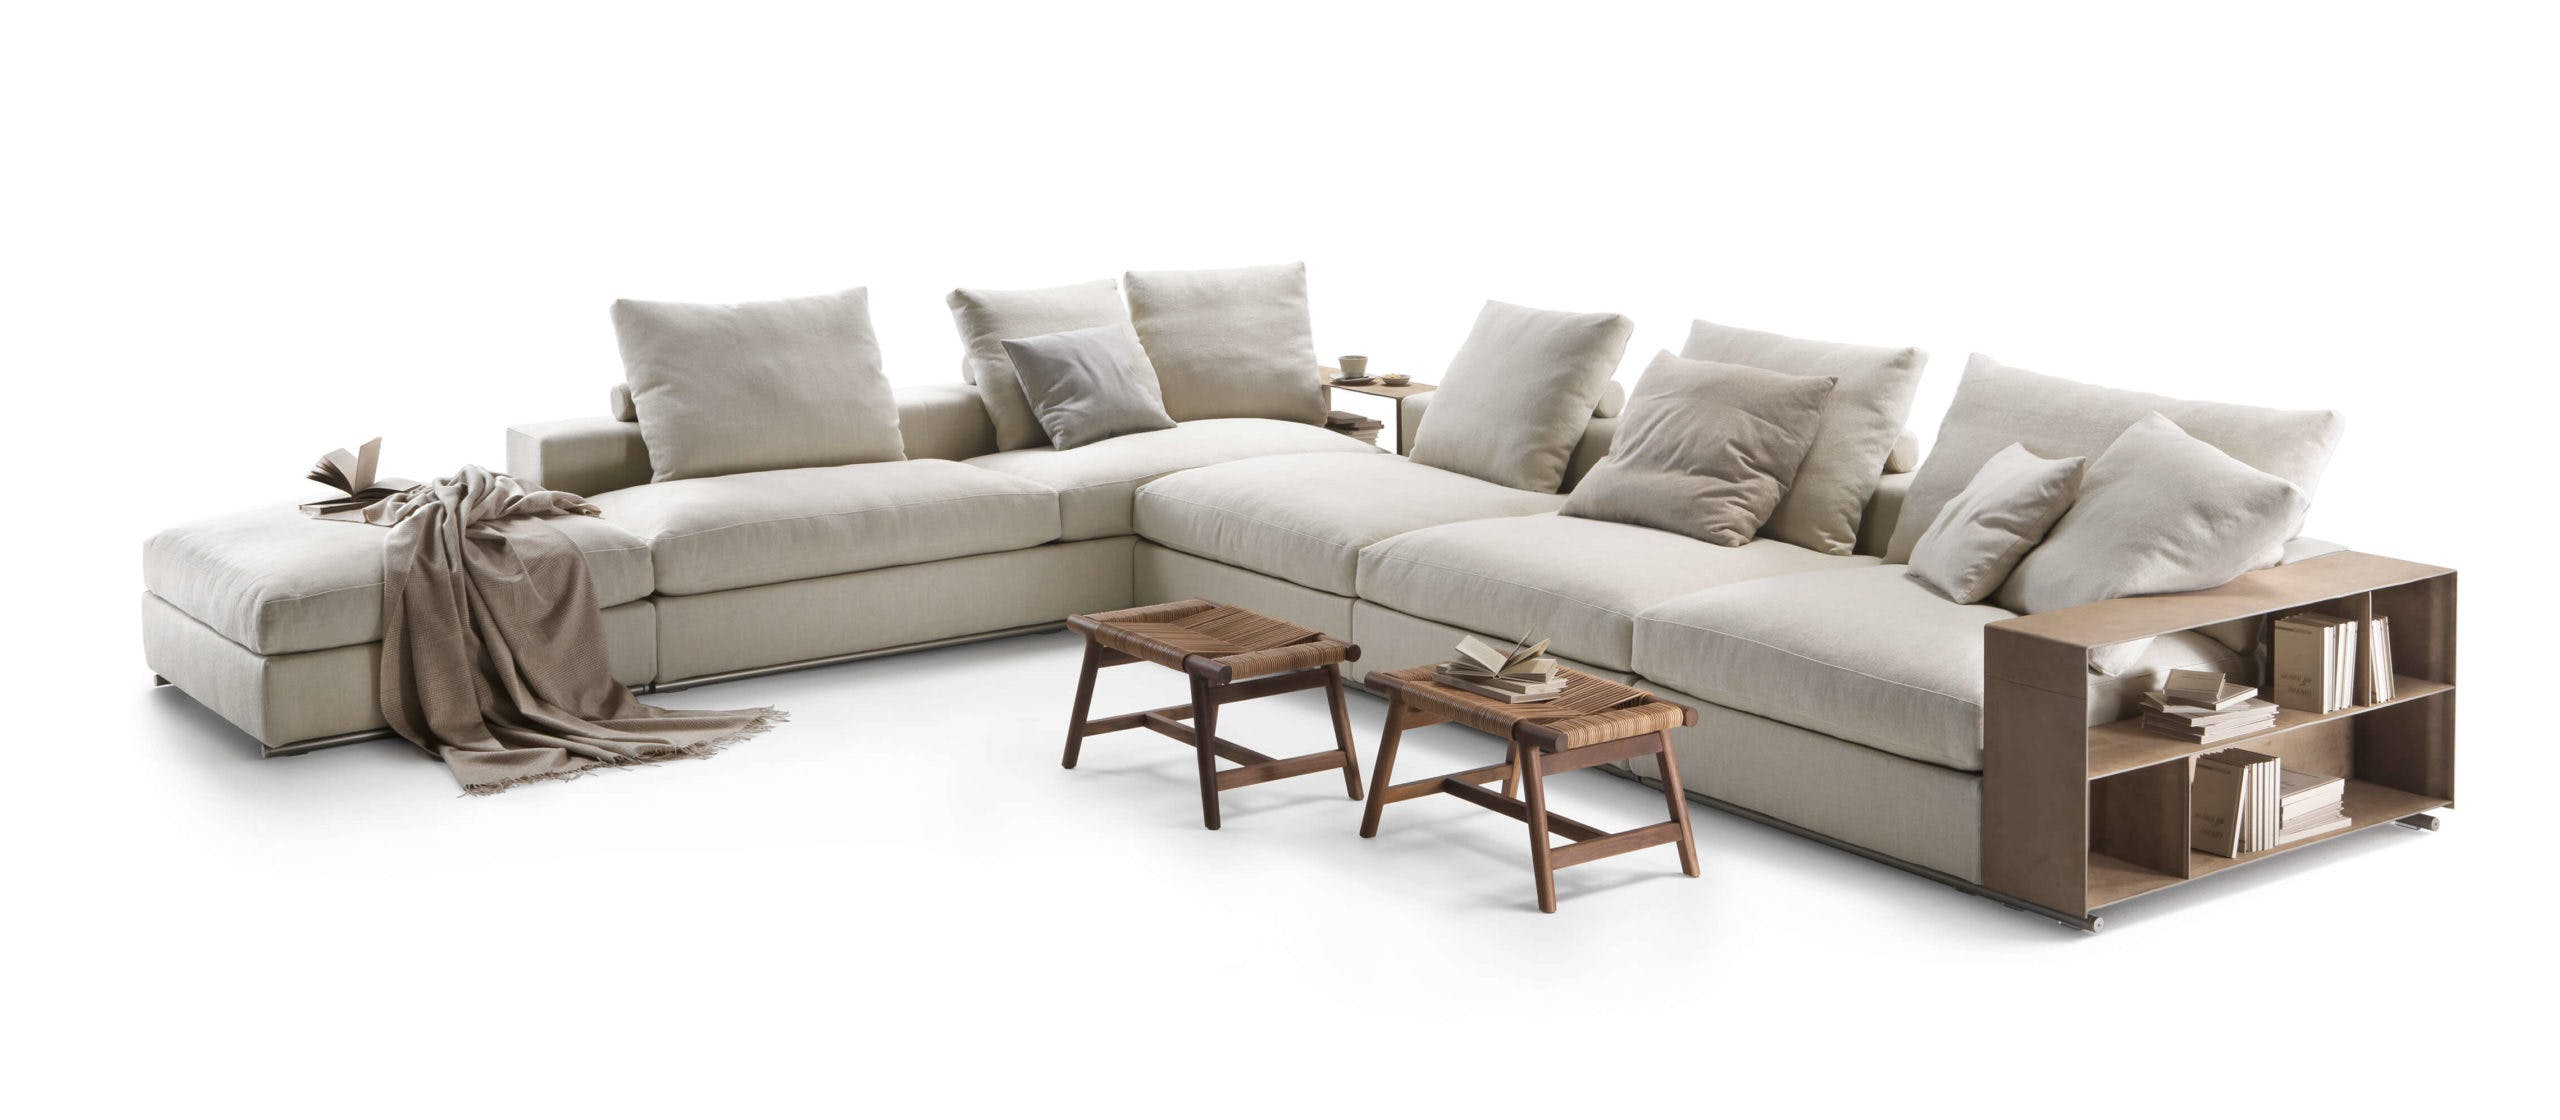 Designer Furniture Store Sydney And Melbourne Fanuli Furniture